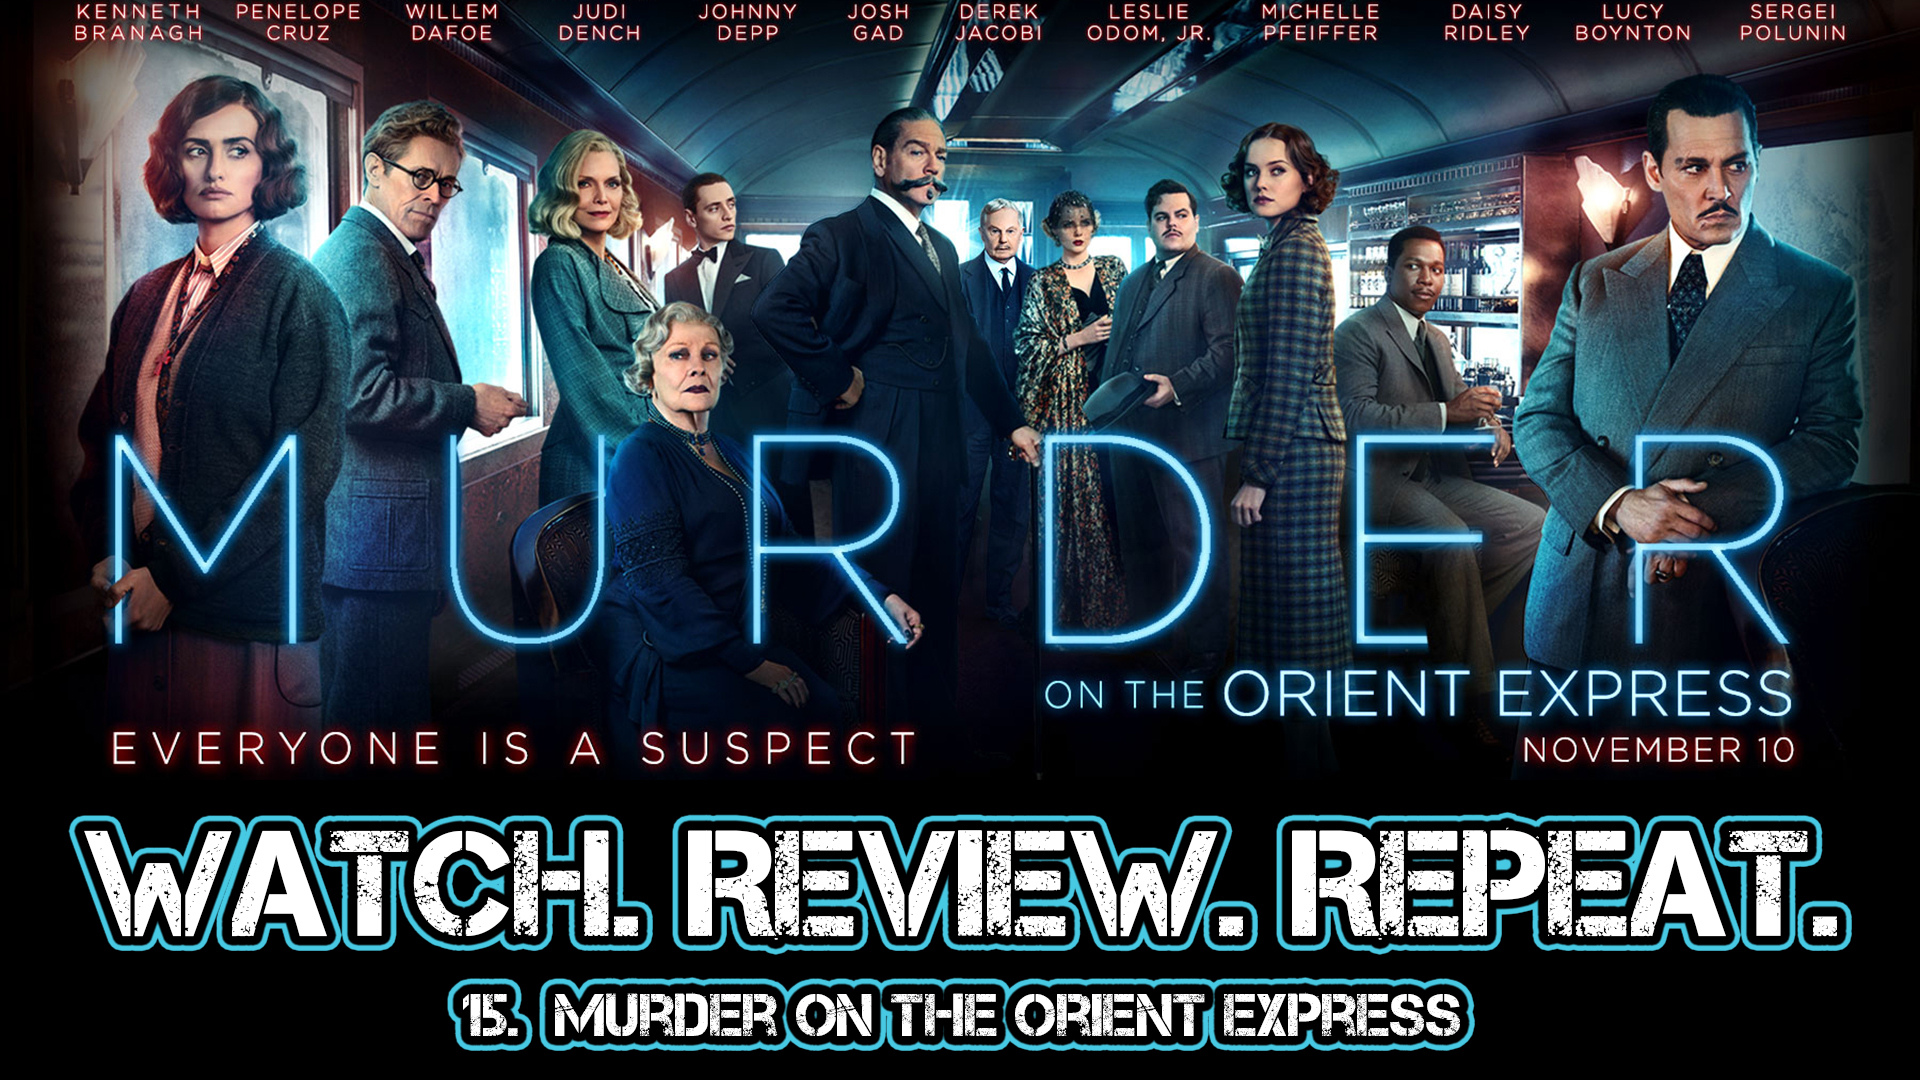 Copy of 15. Murder on the Orient Express